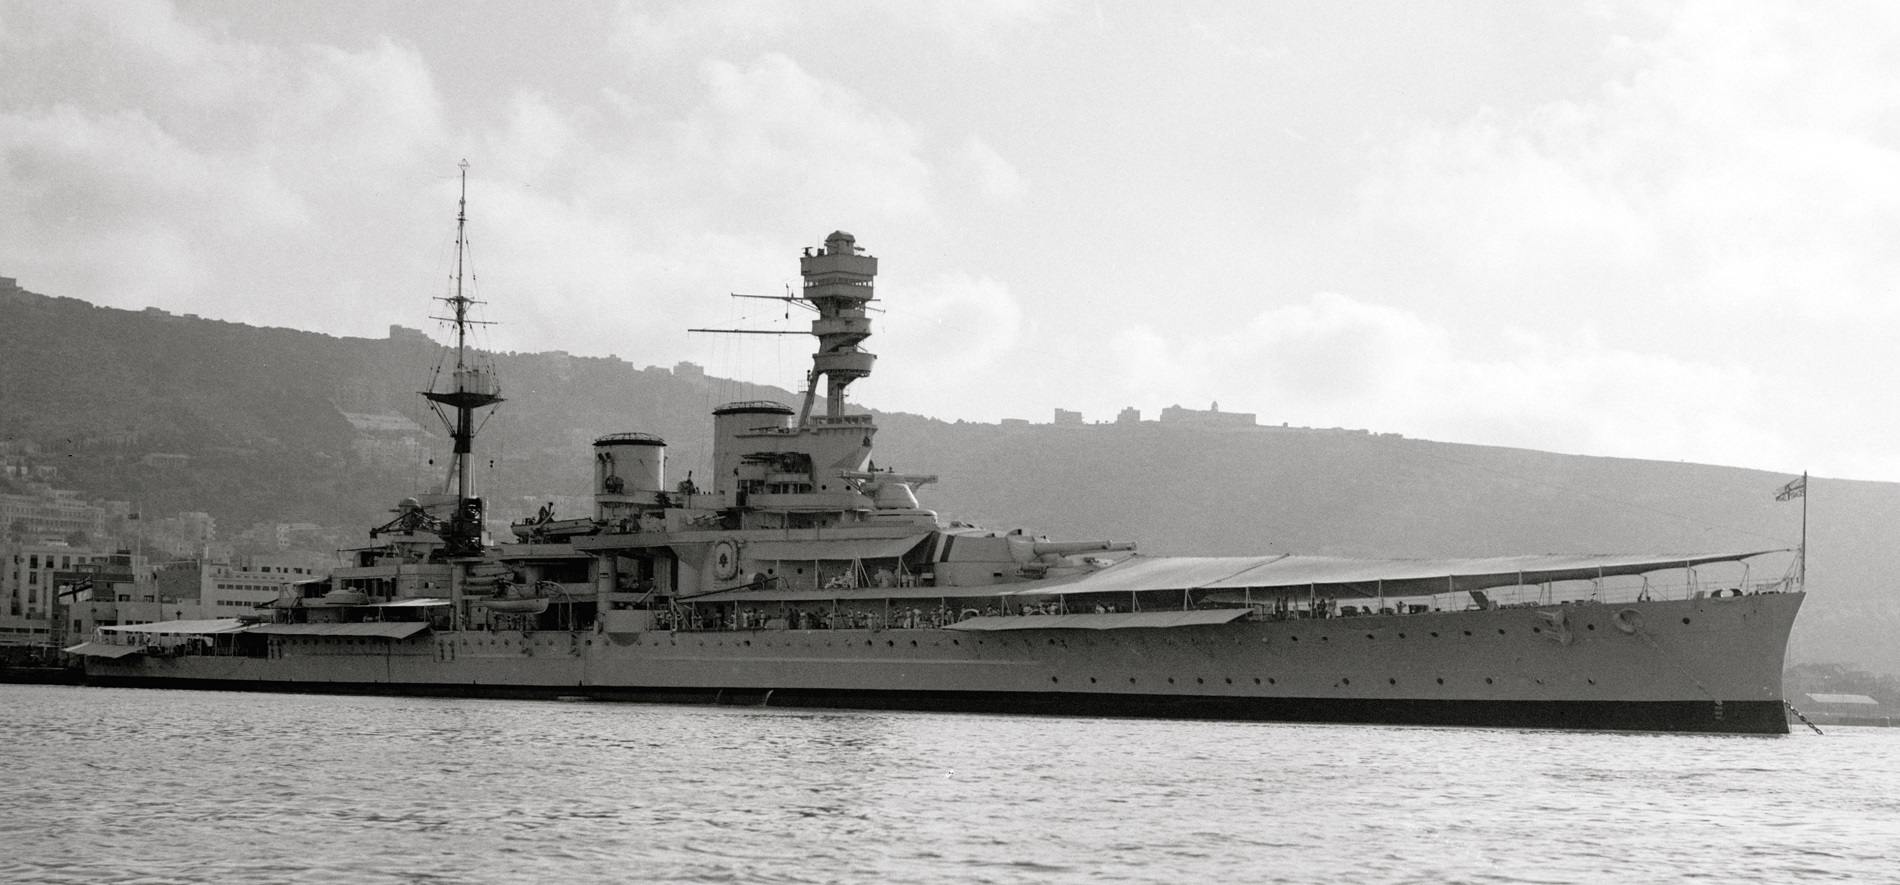 Death of the Battleships: When These Warships Were Sunk Naval Warfare Changed Forever